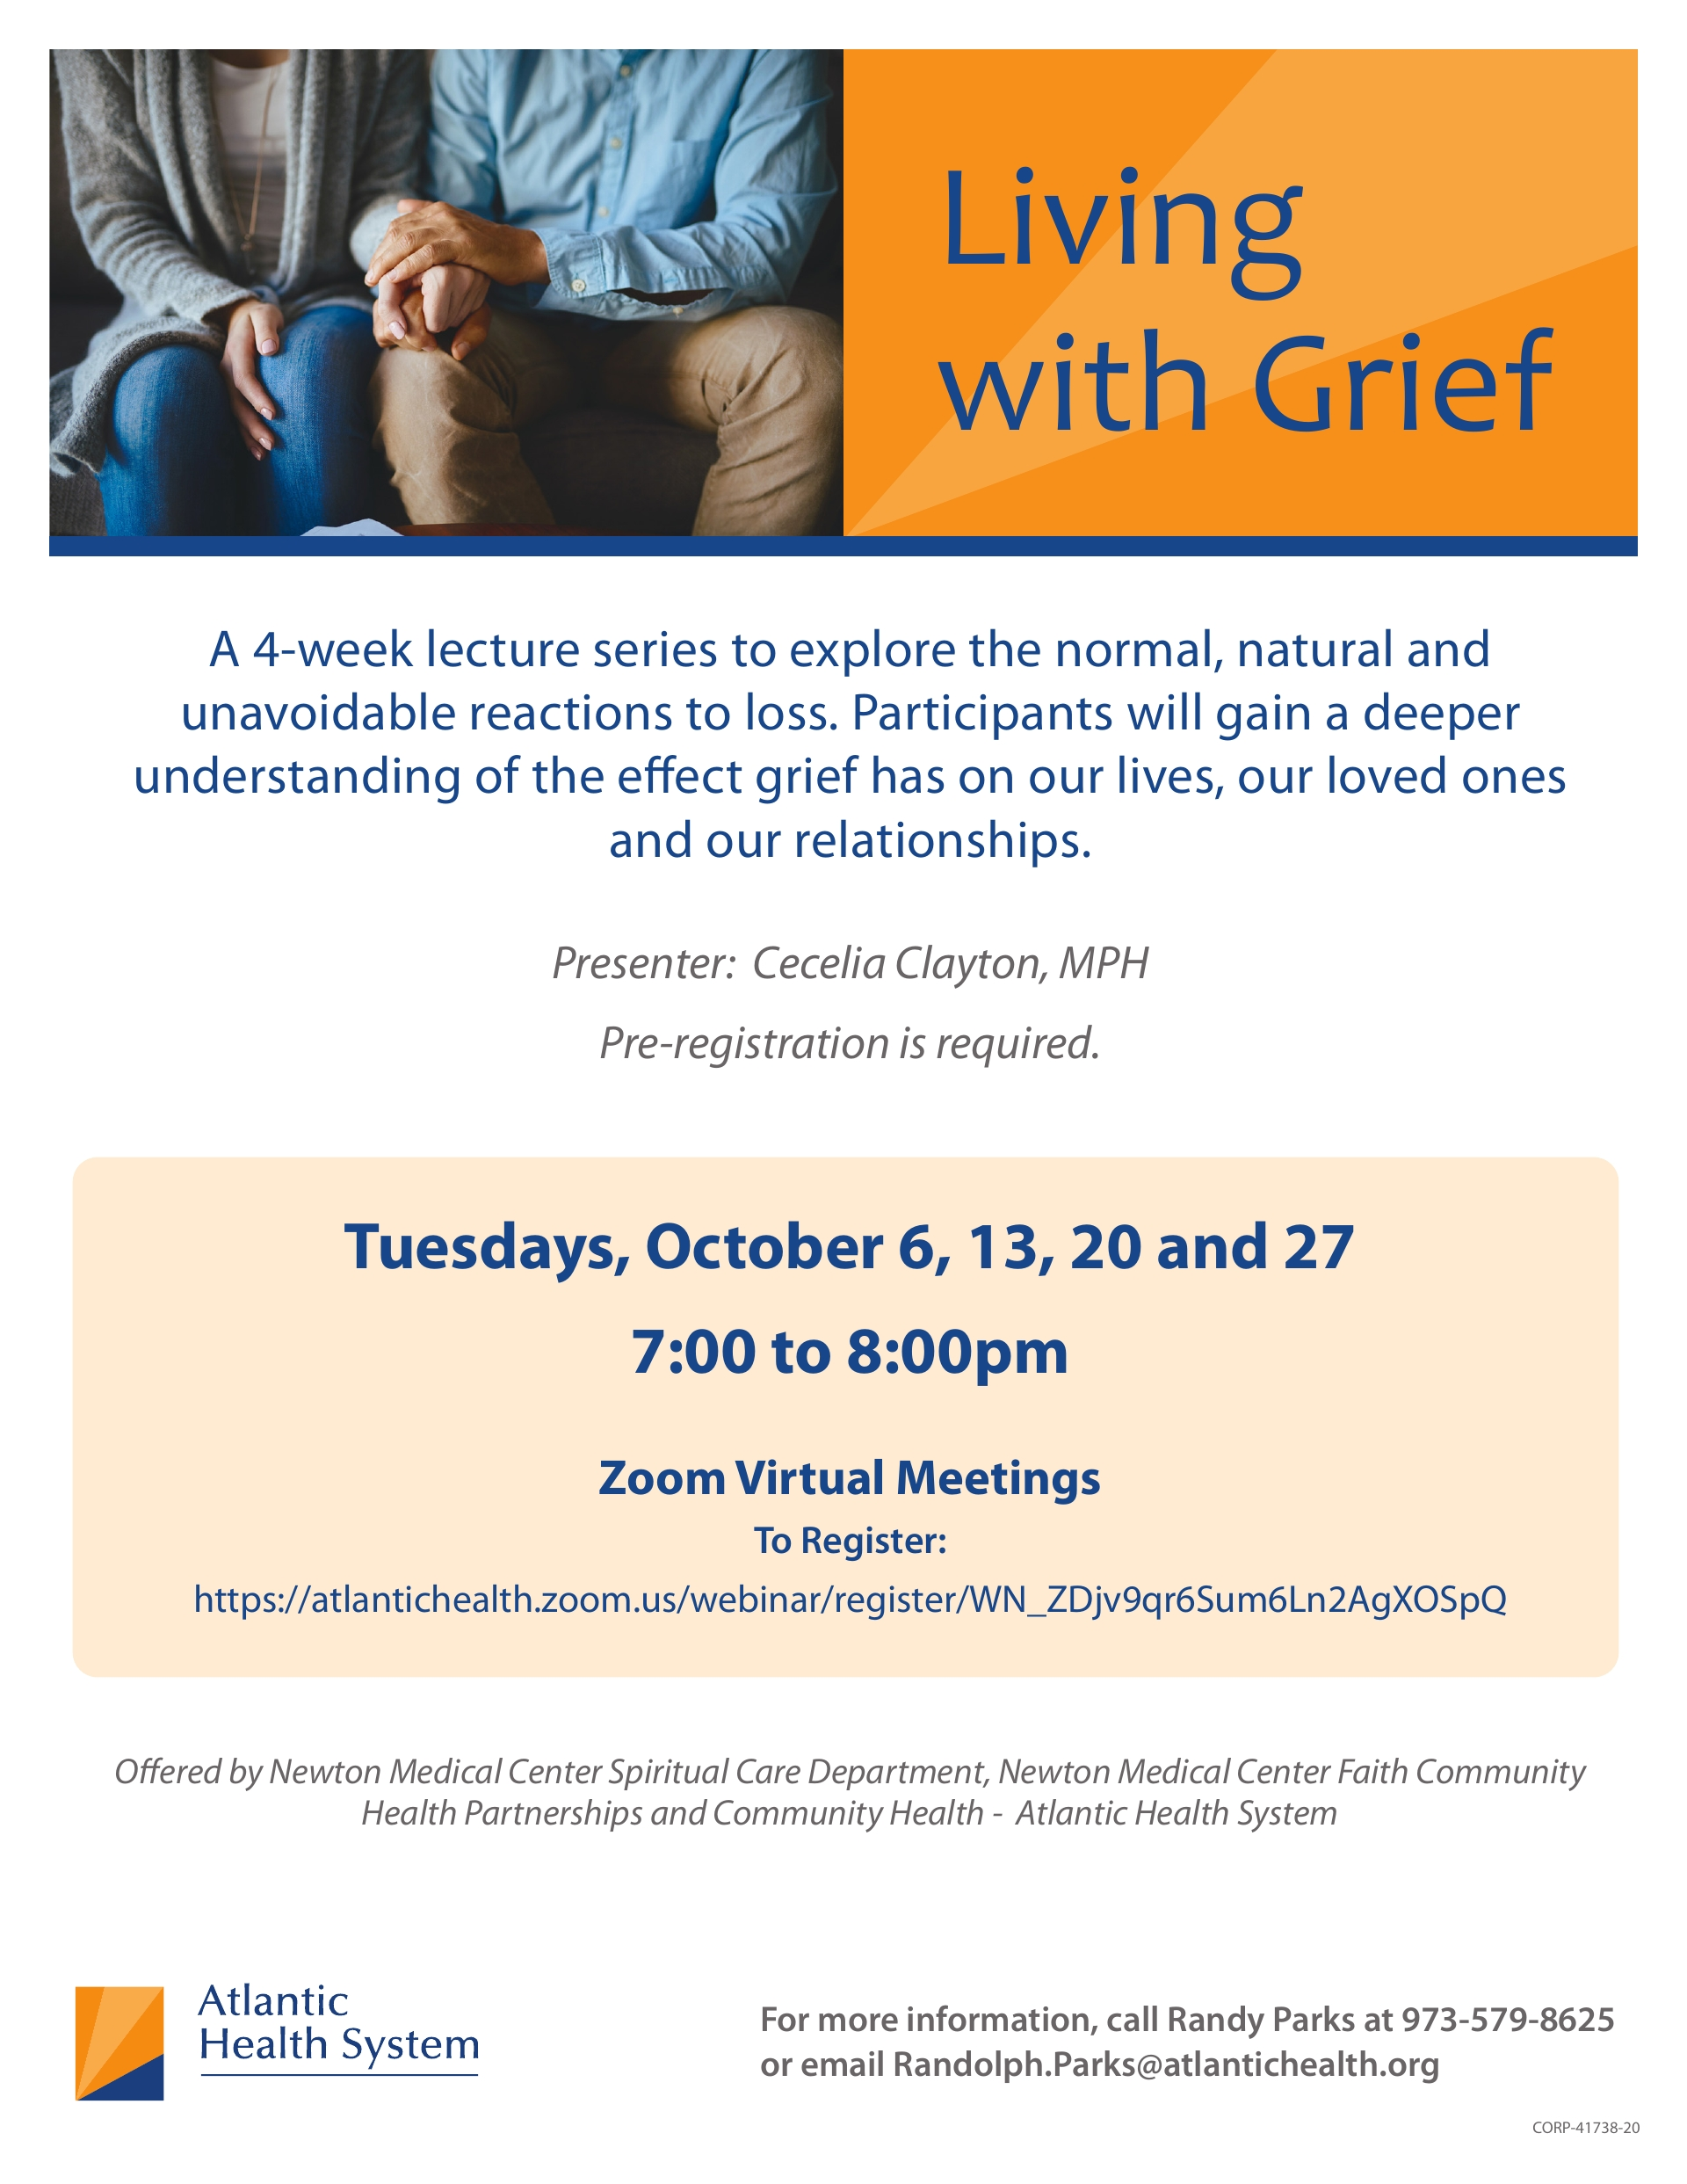 LIVING WITH GRIEF 4-week Lecture Series October 6,13,20,27, 2020